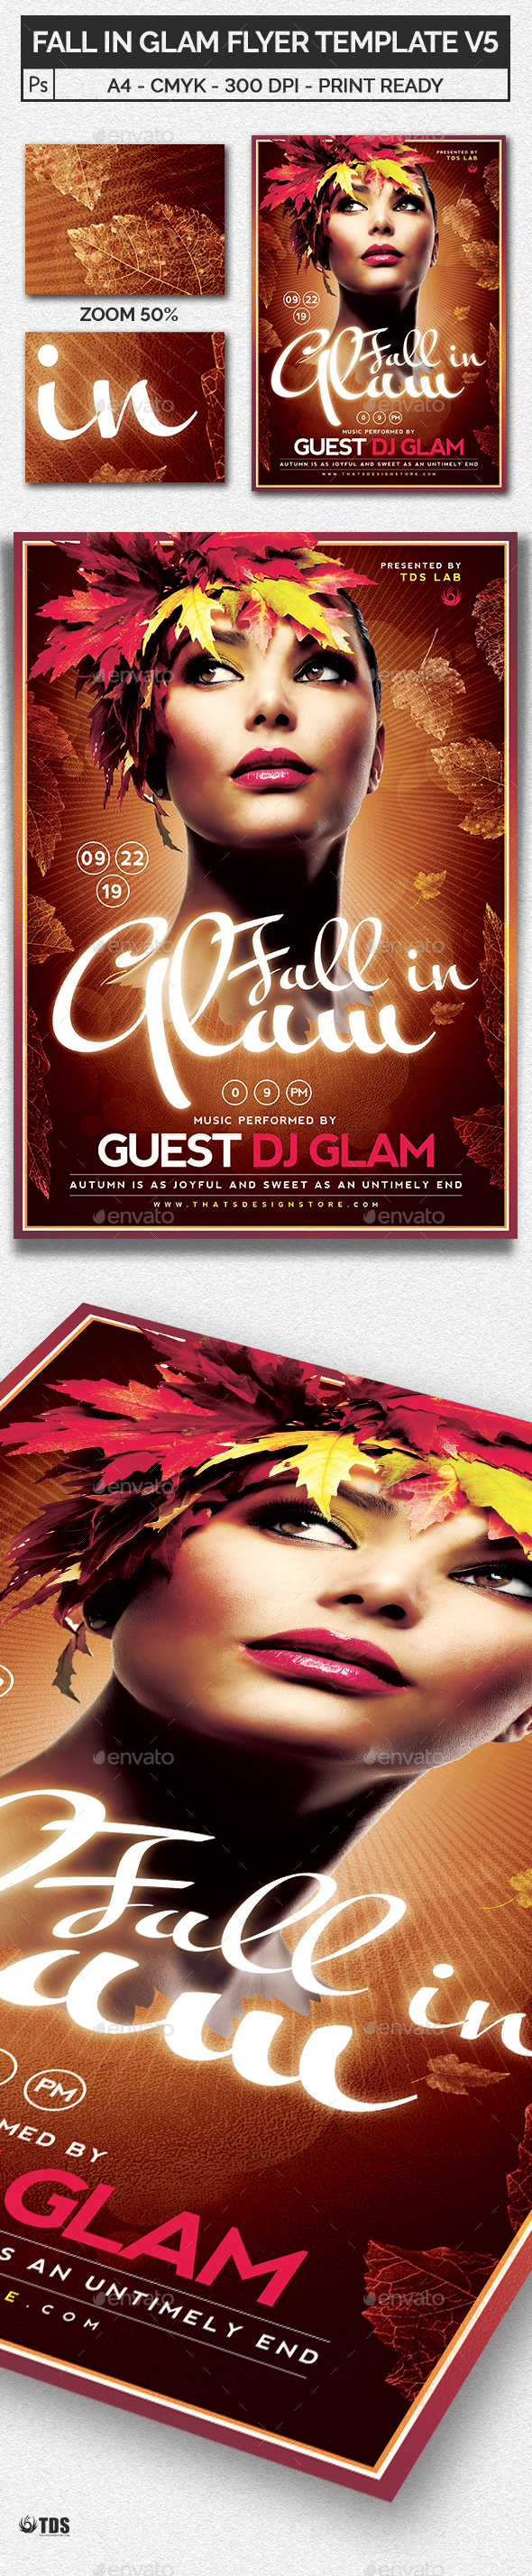 Fall in Glam Flyer Template V5 - Clubs & Parties Events